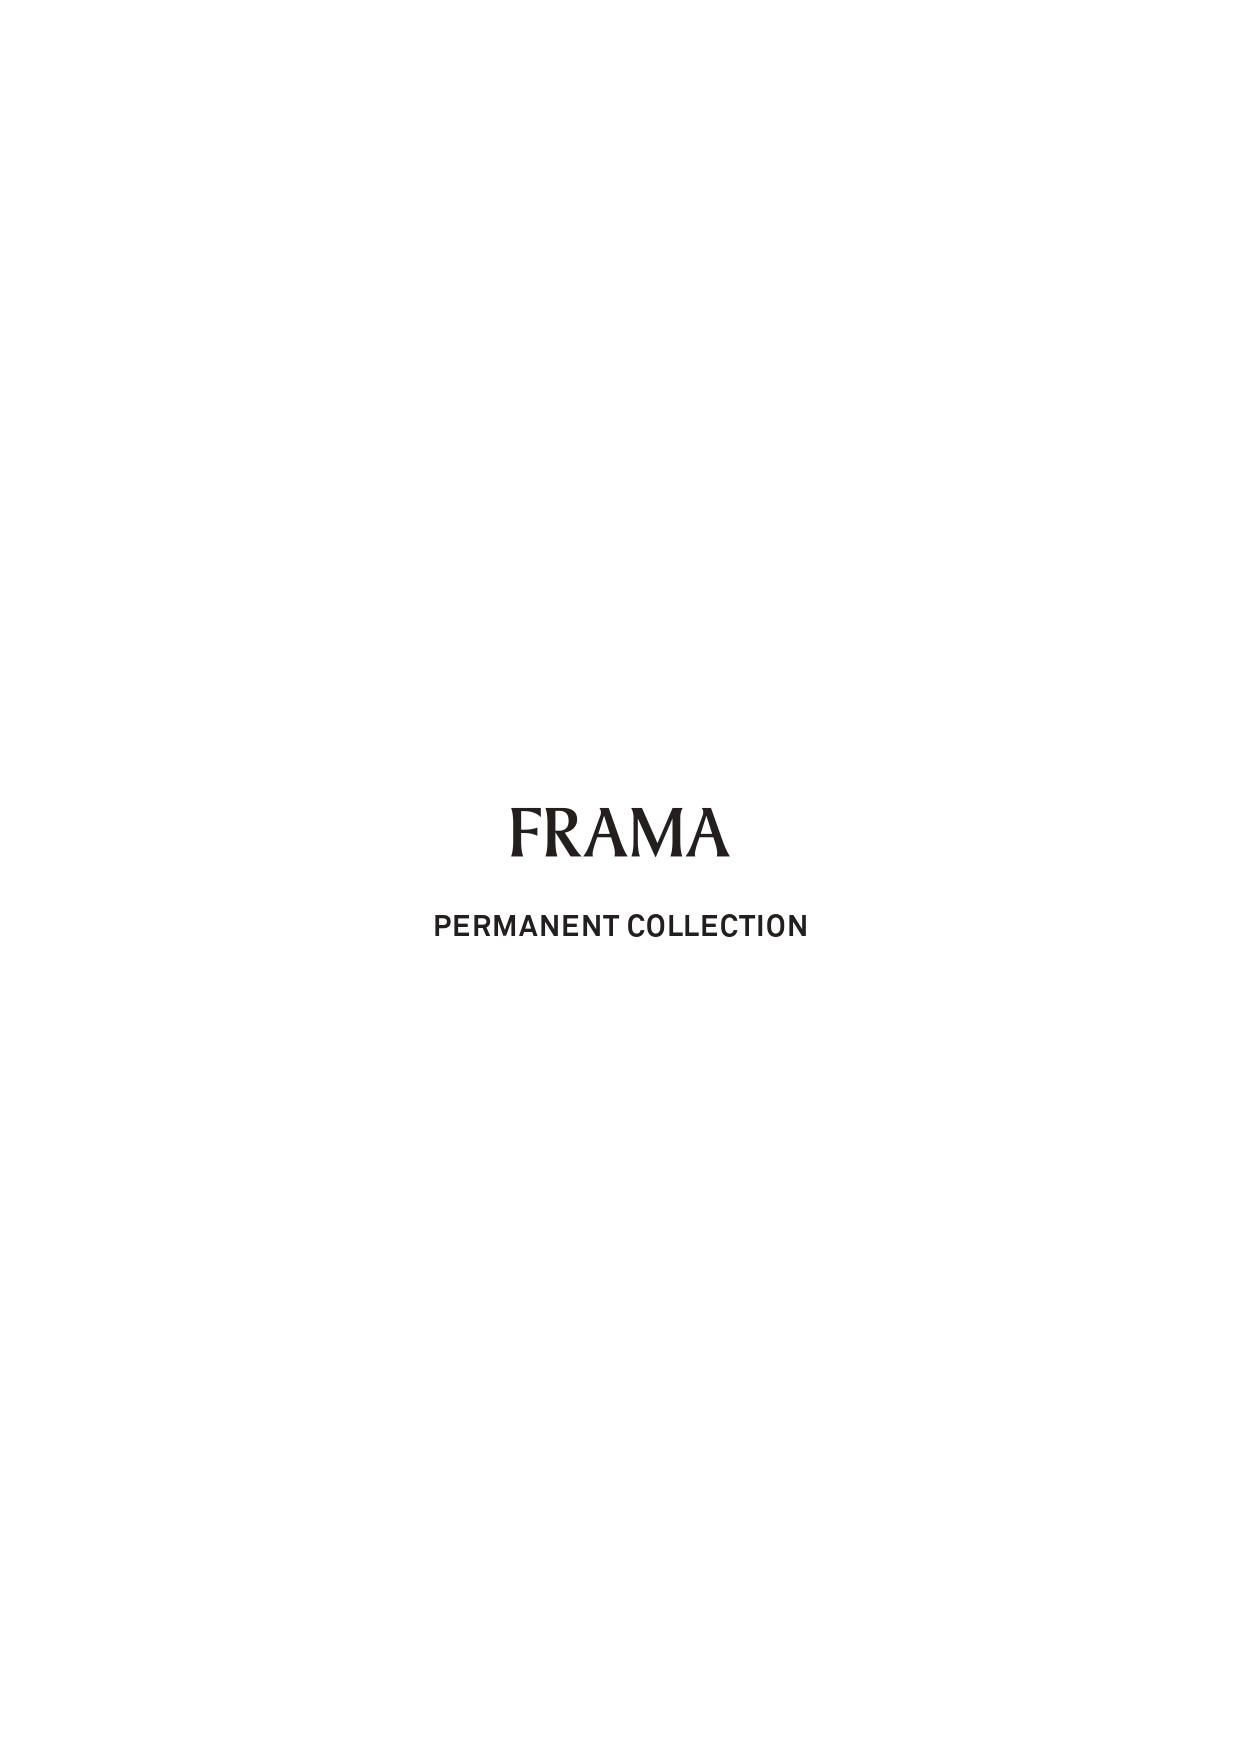 Frama l 2019 l general catalogue_page-0001.jpg